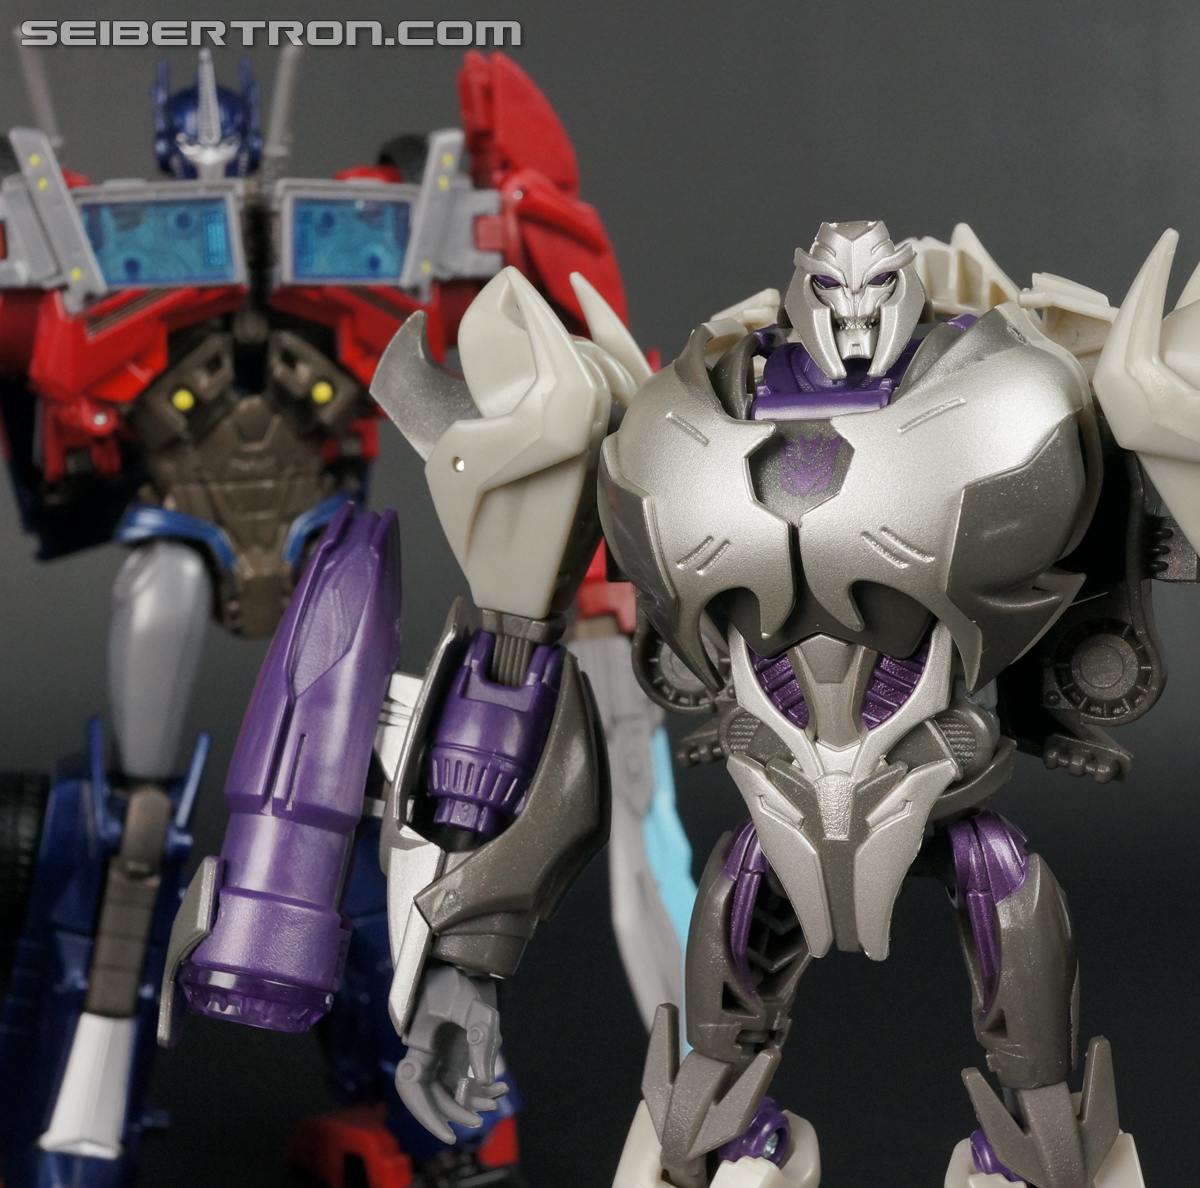 Transformers First Edition Megatron (Image #132 of 165)